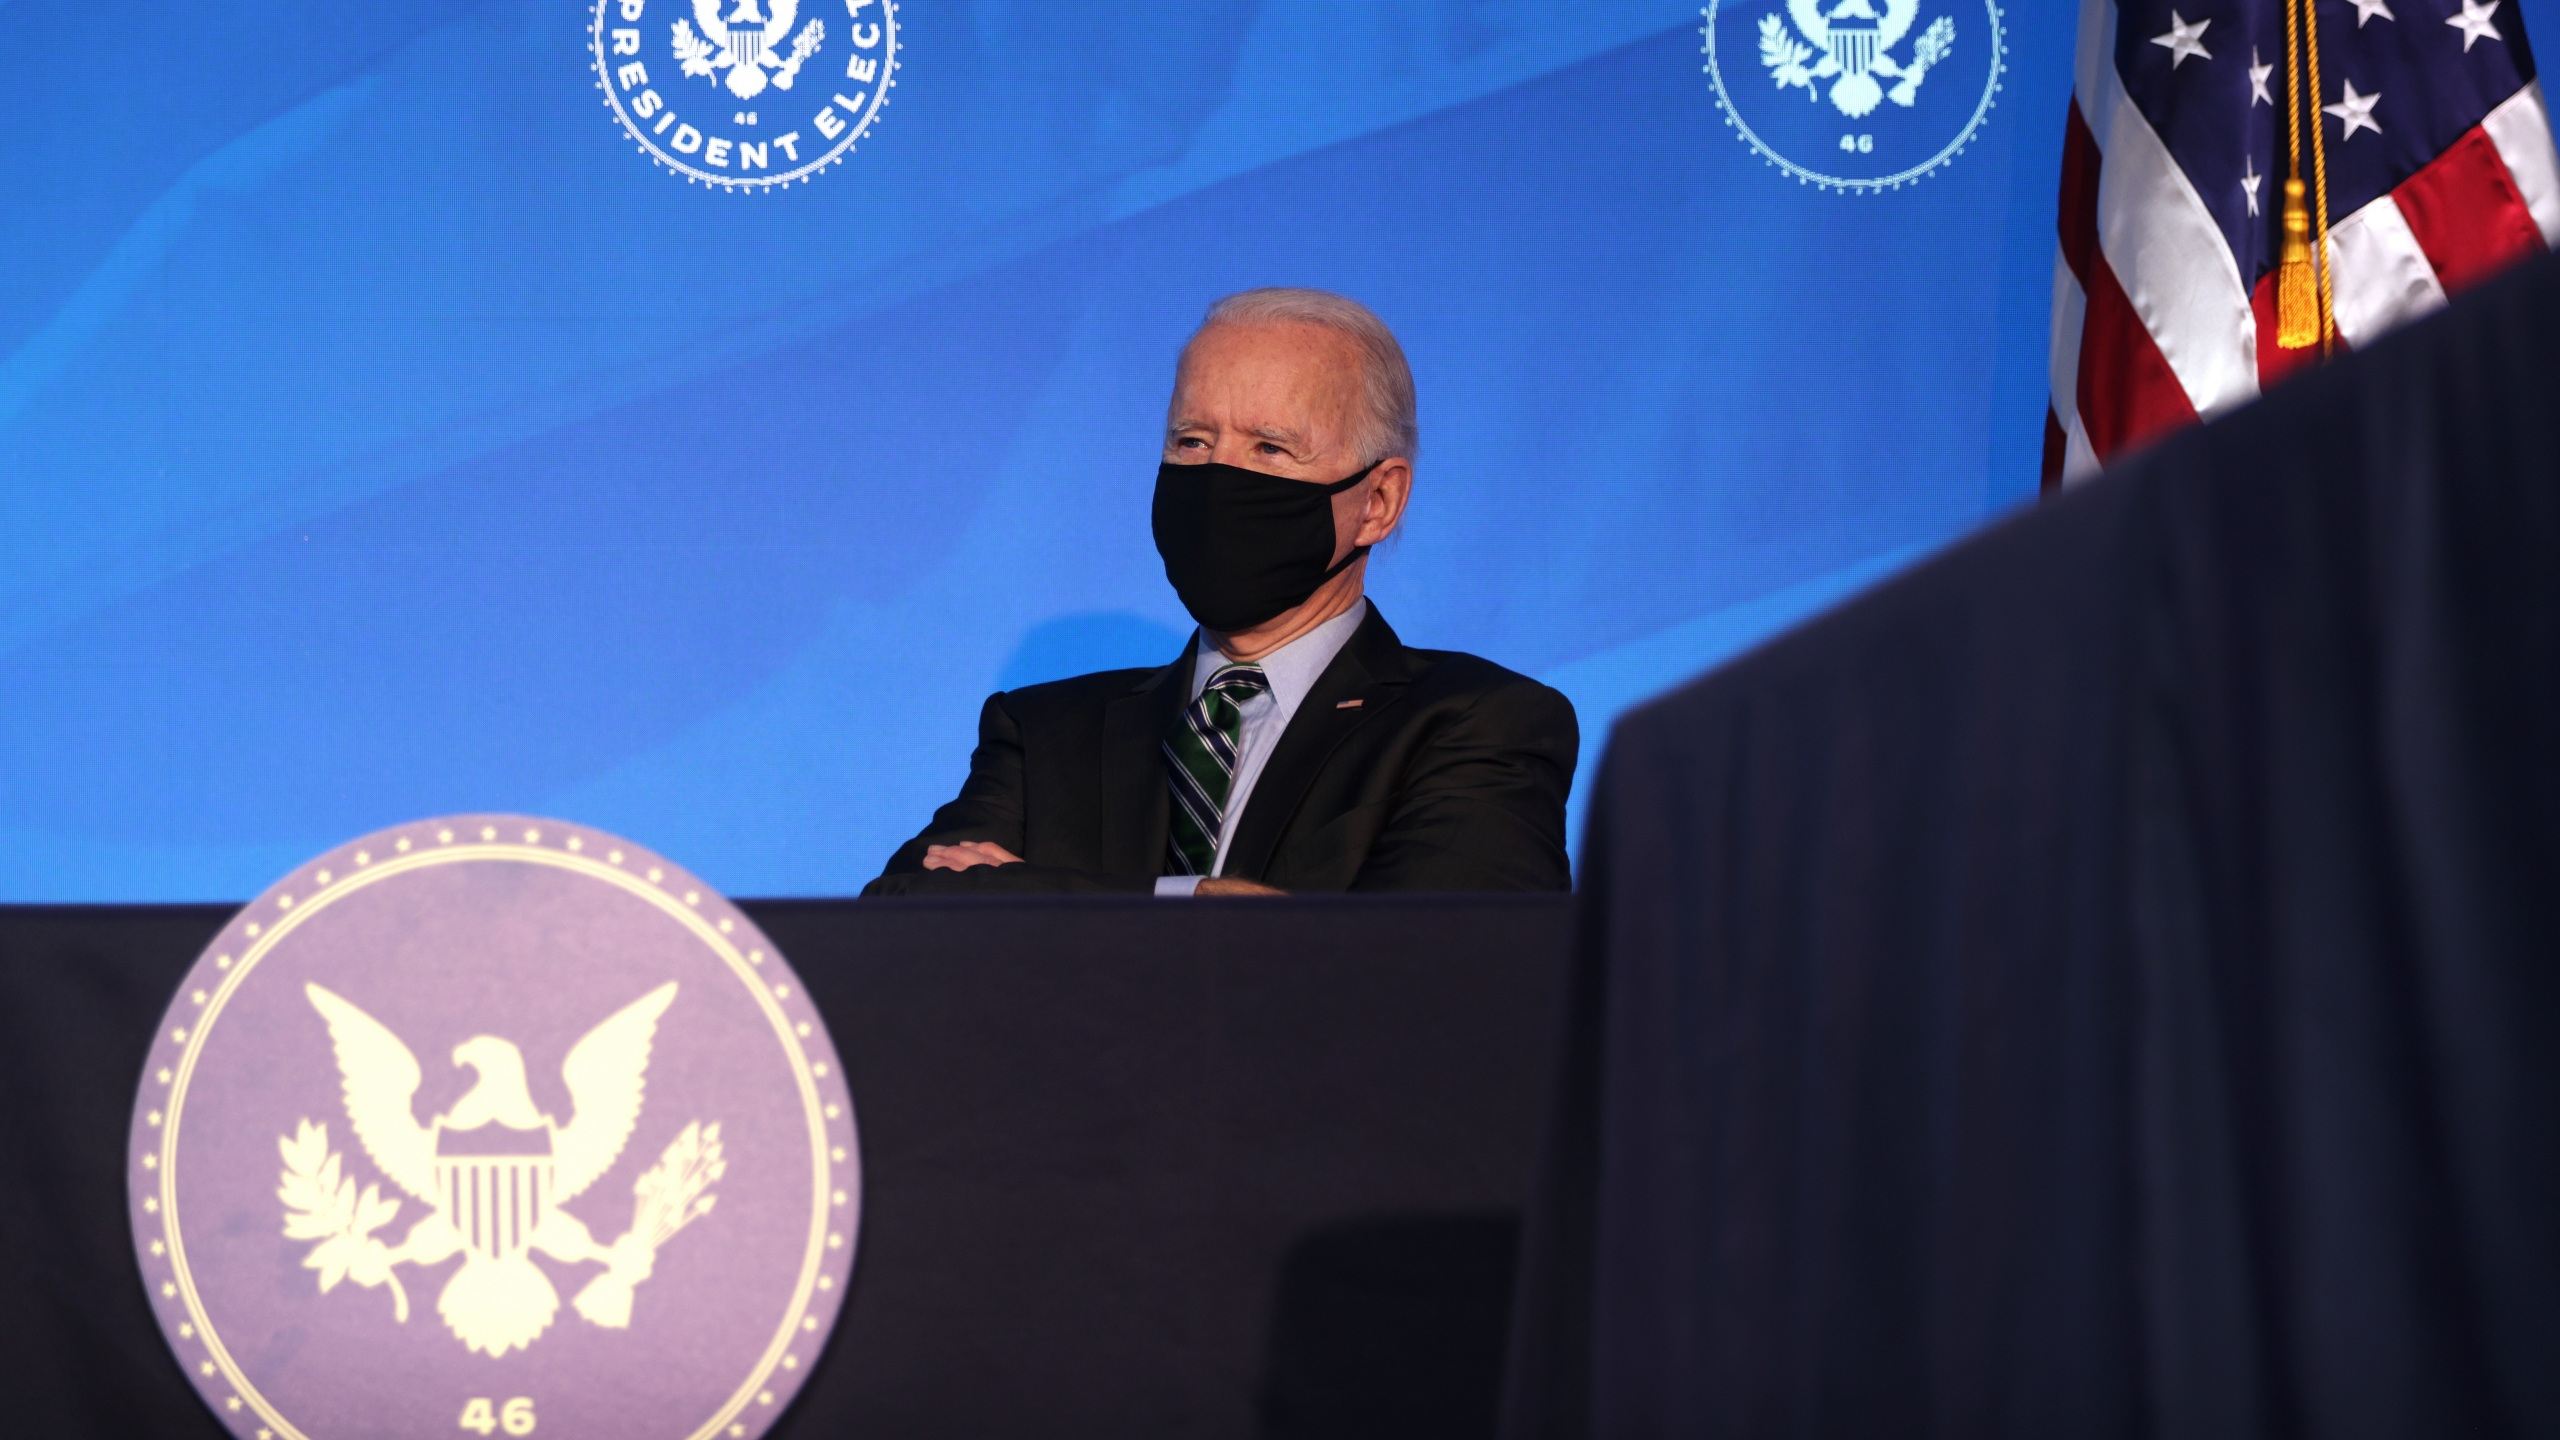 U.S. President-elect Joe Biden listens during an announcement Jan. 16, 2021 at the Queen theater in Wilmington, Delaware. (Alex Wong/Getty Images)